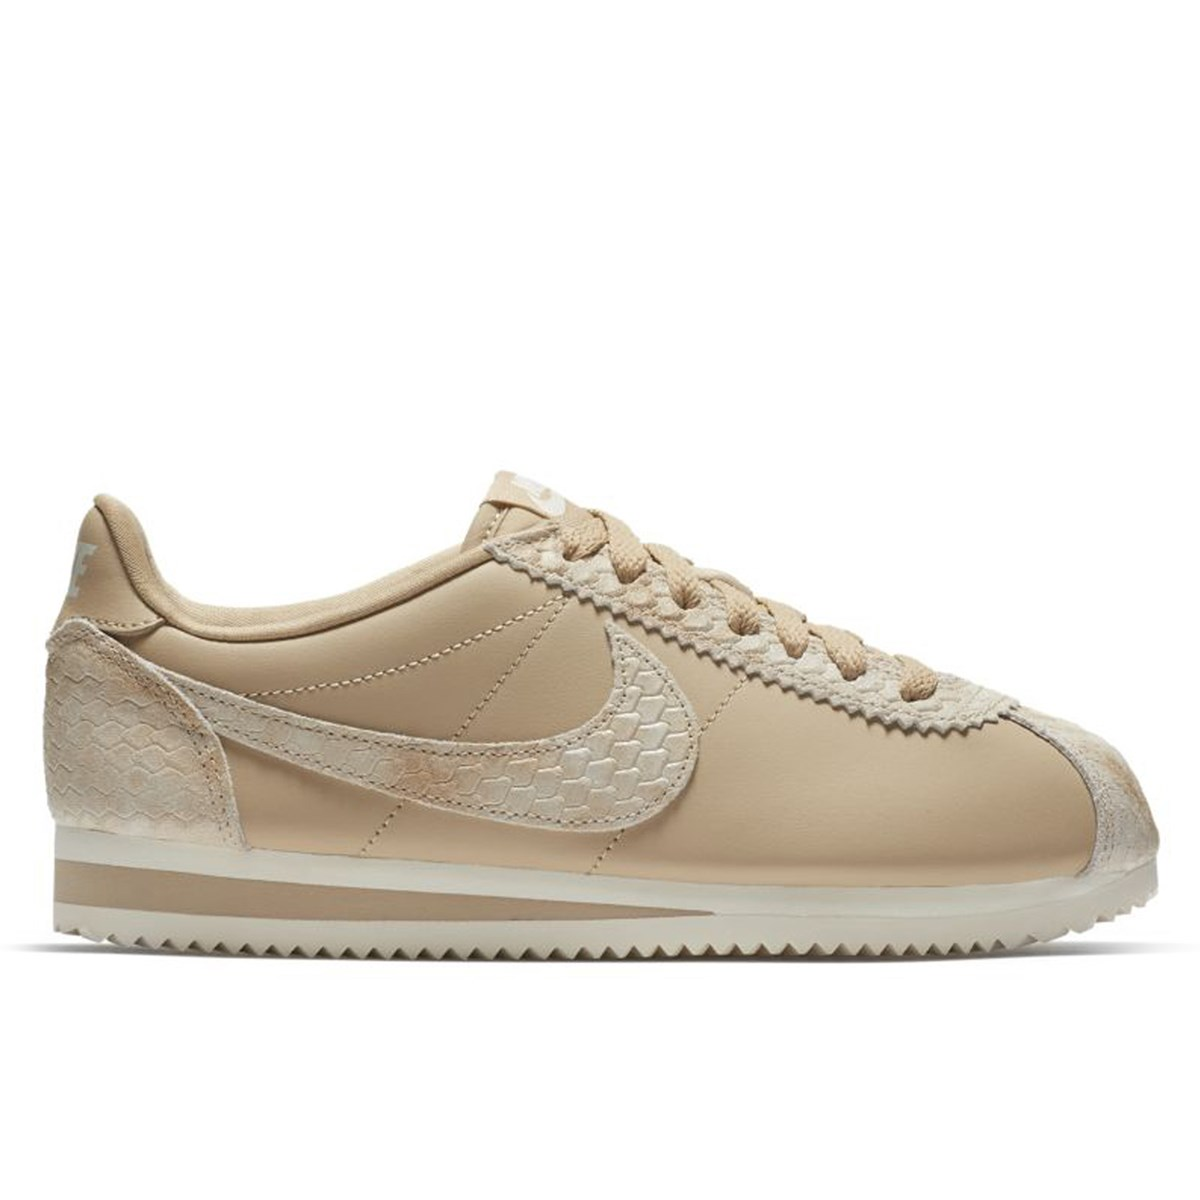 1bc85e1736c6 Women s Classic Cortez Premium Linen Natural Sneaker. Previous. default  view  ALT1